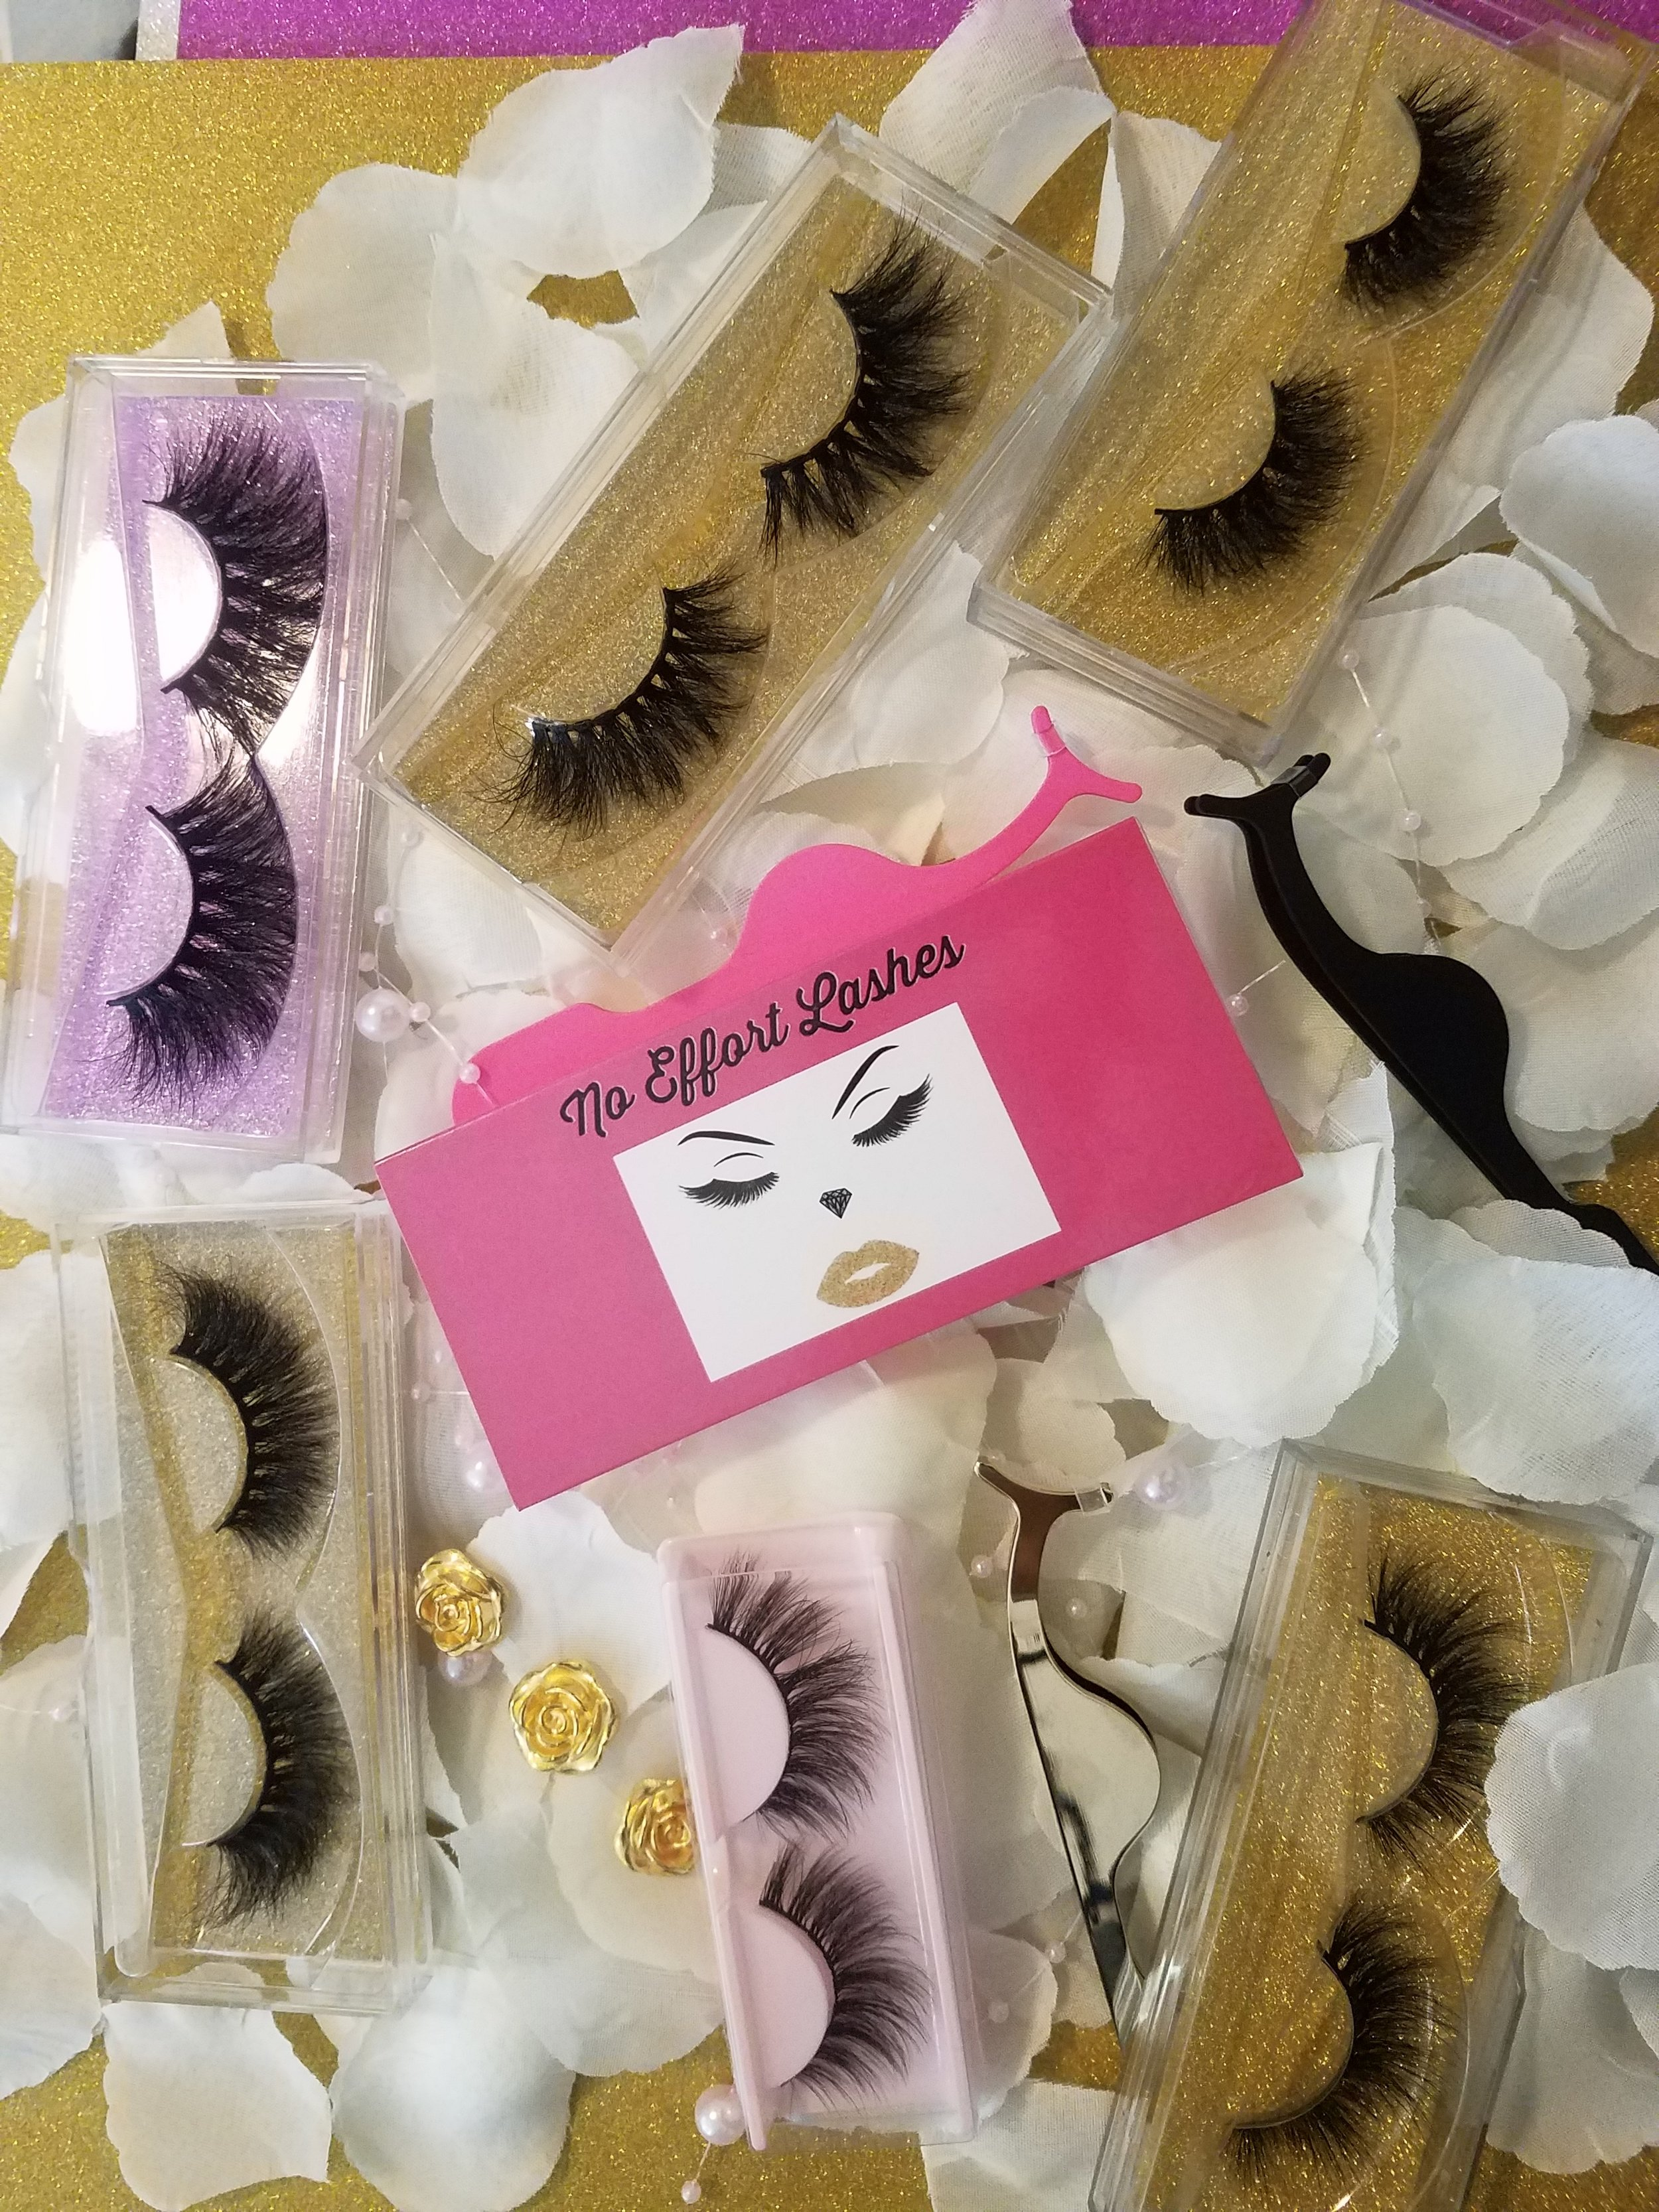 No Effort Lashes   No Effort Lashes is a black owned mink lash supplier company. I provide Luxury minks in lengths 18mm to 25mm. We have over 10 different styles to choose from.